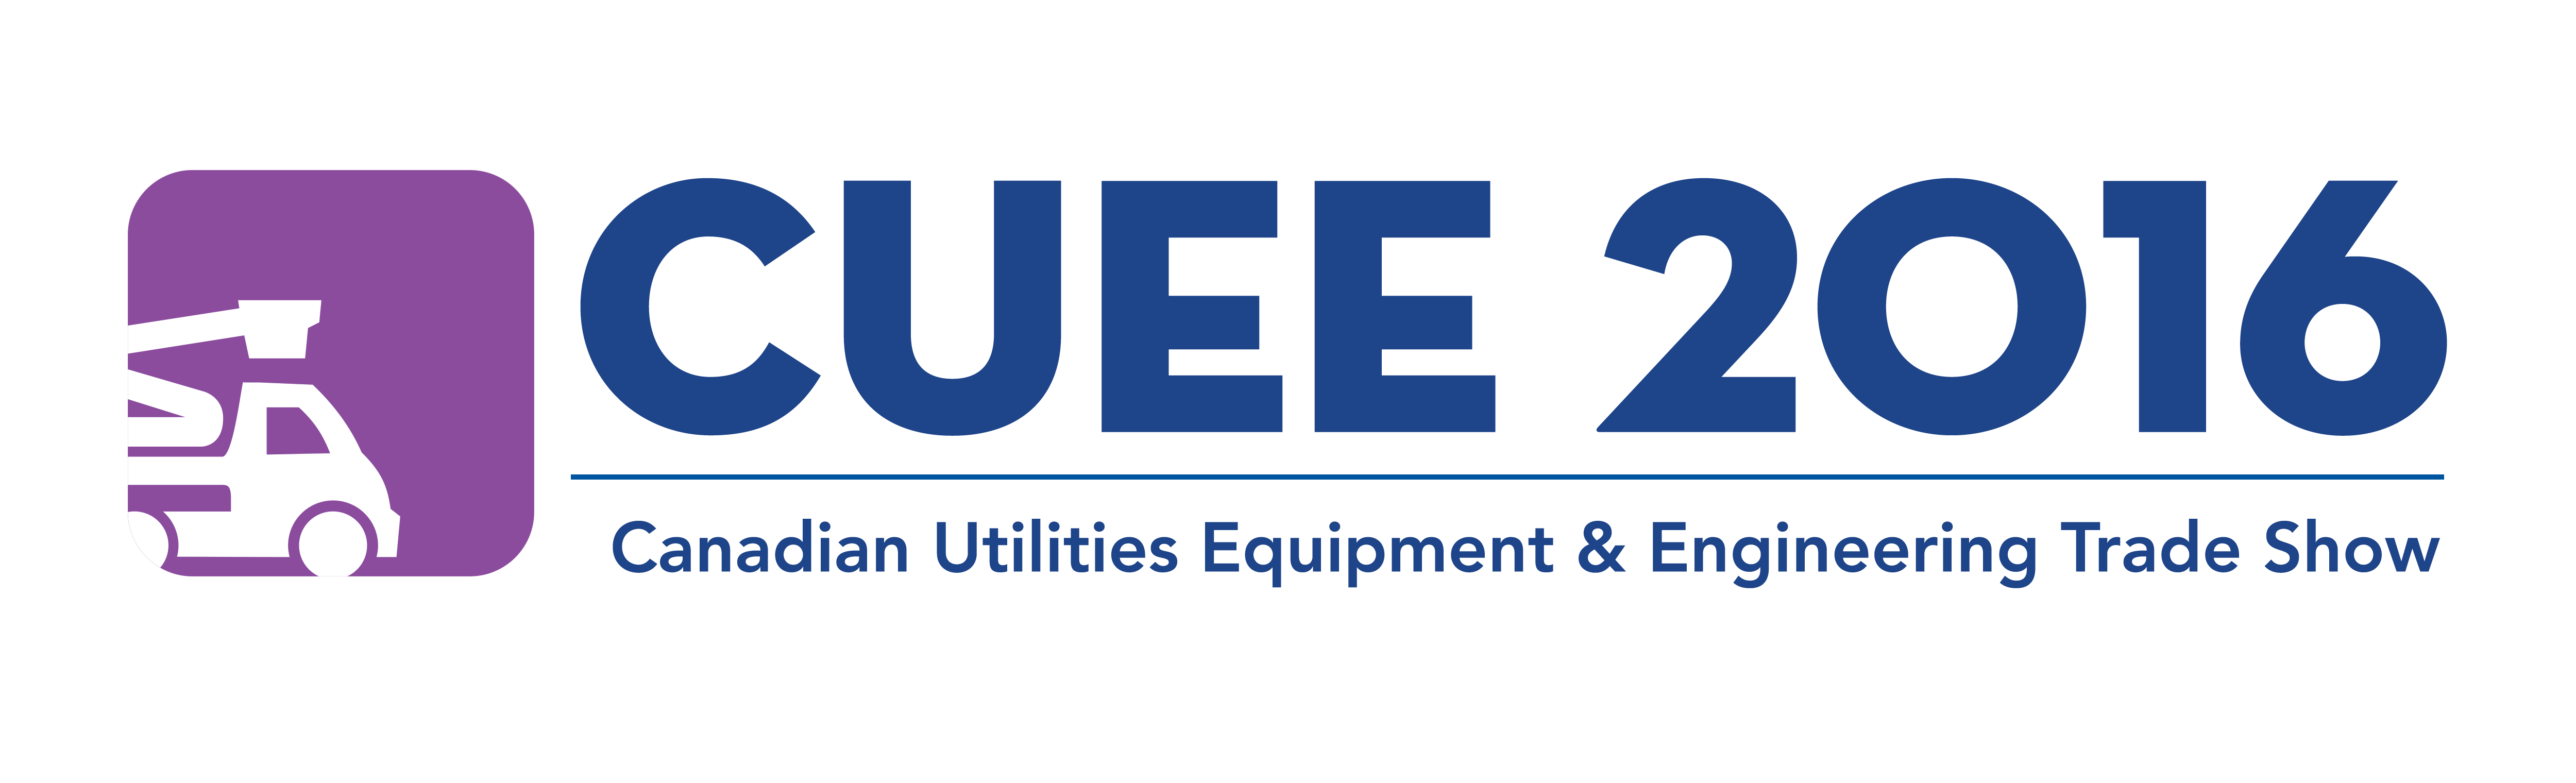 LTL will be at CUEE 2016